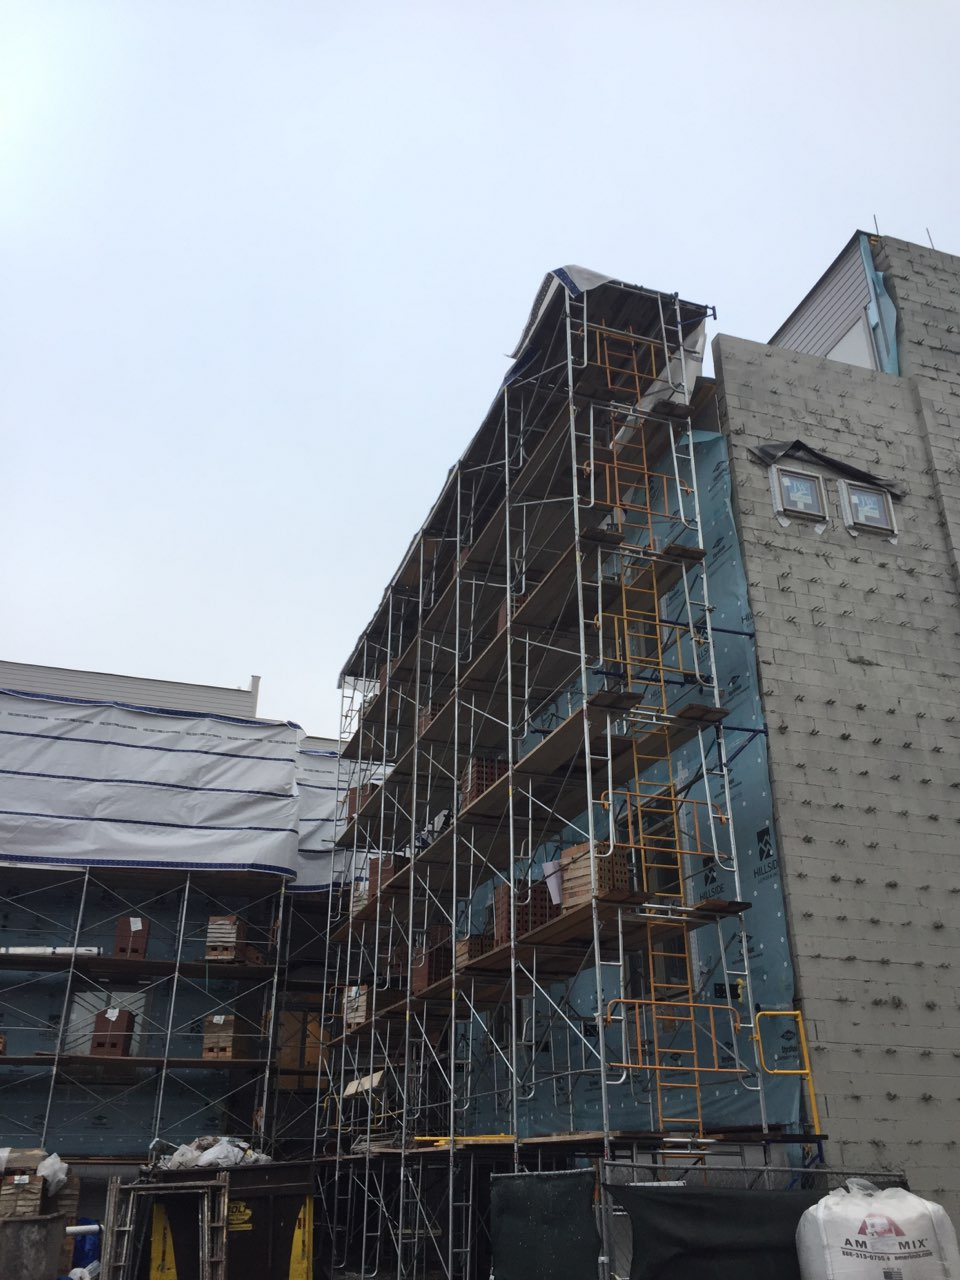 1400 S Halsted St scaffold 2